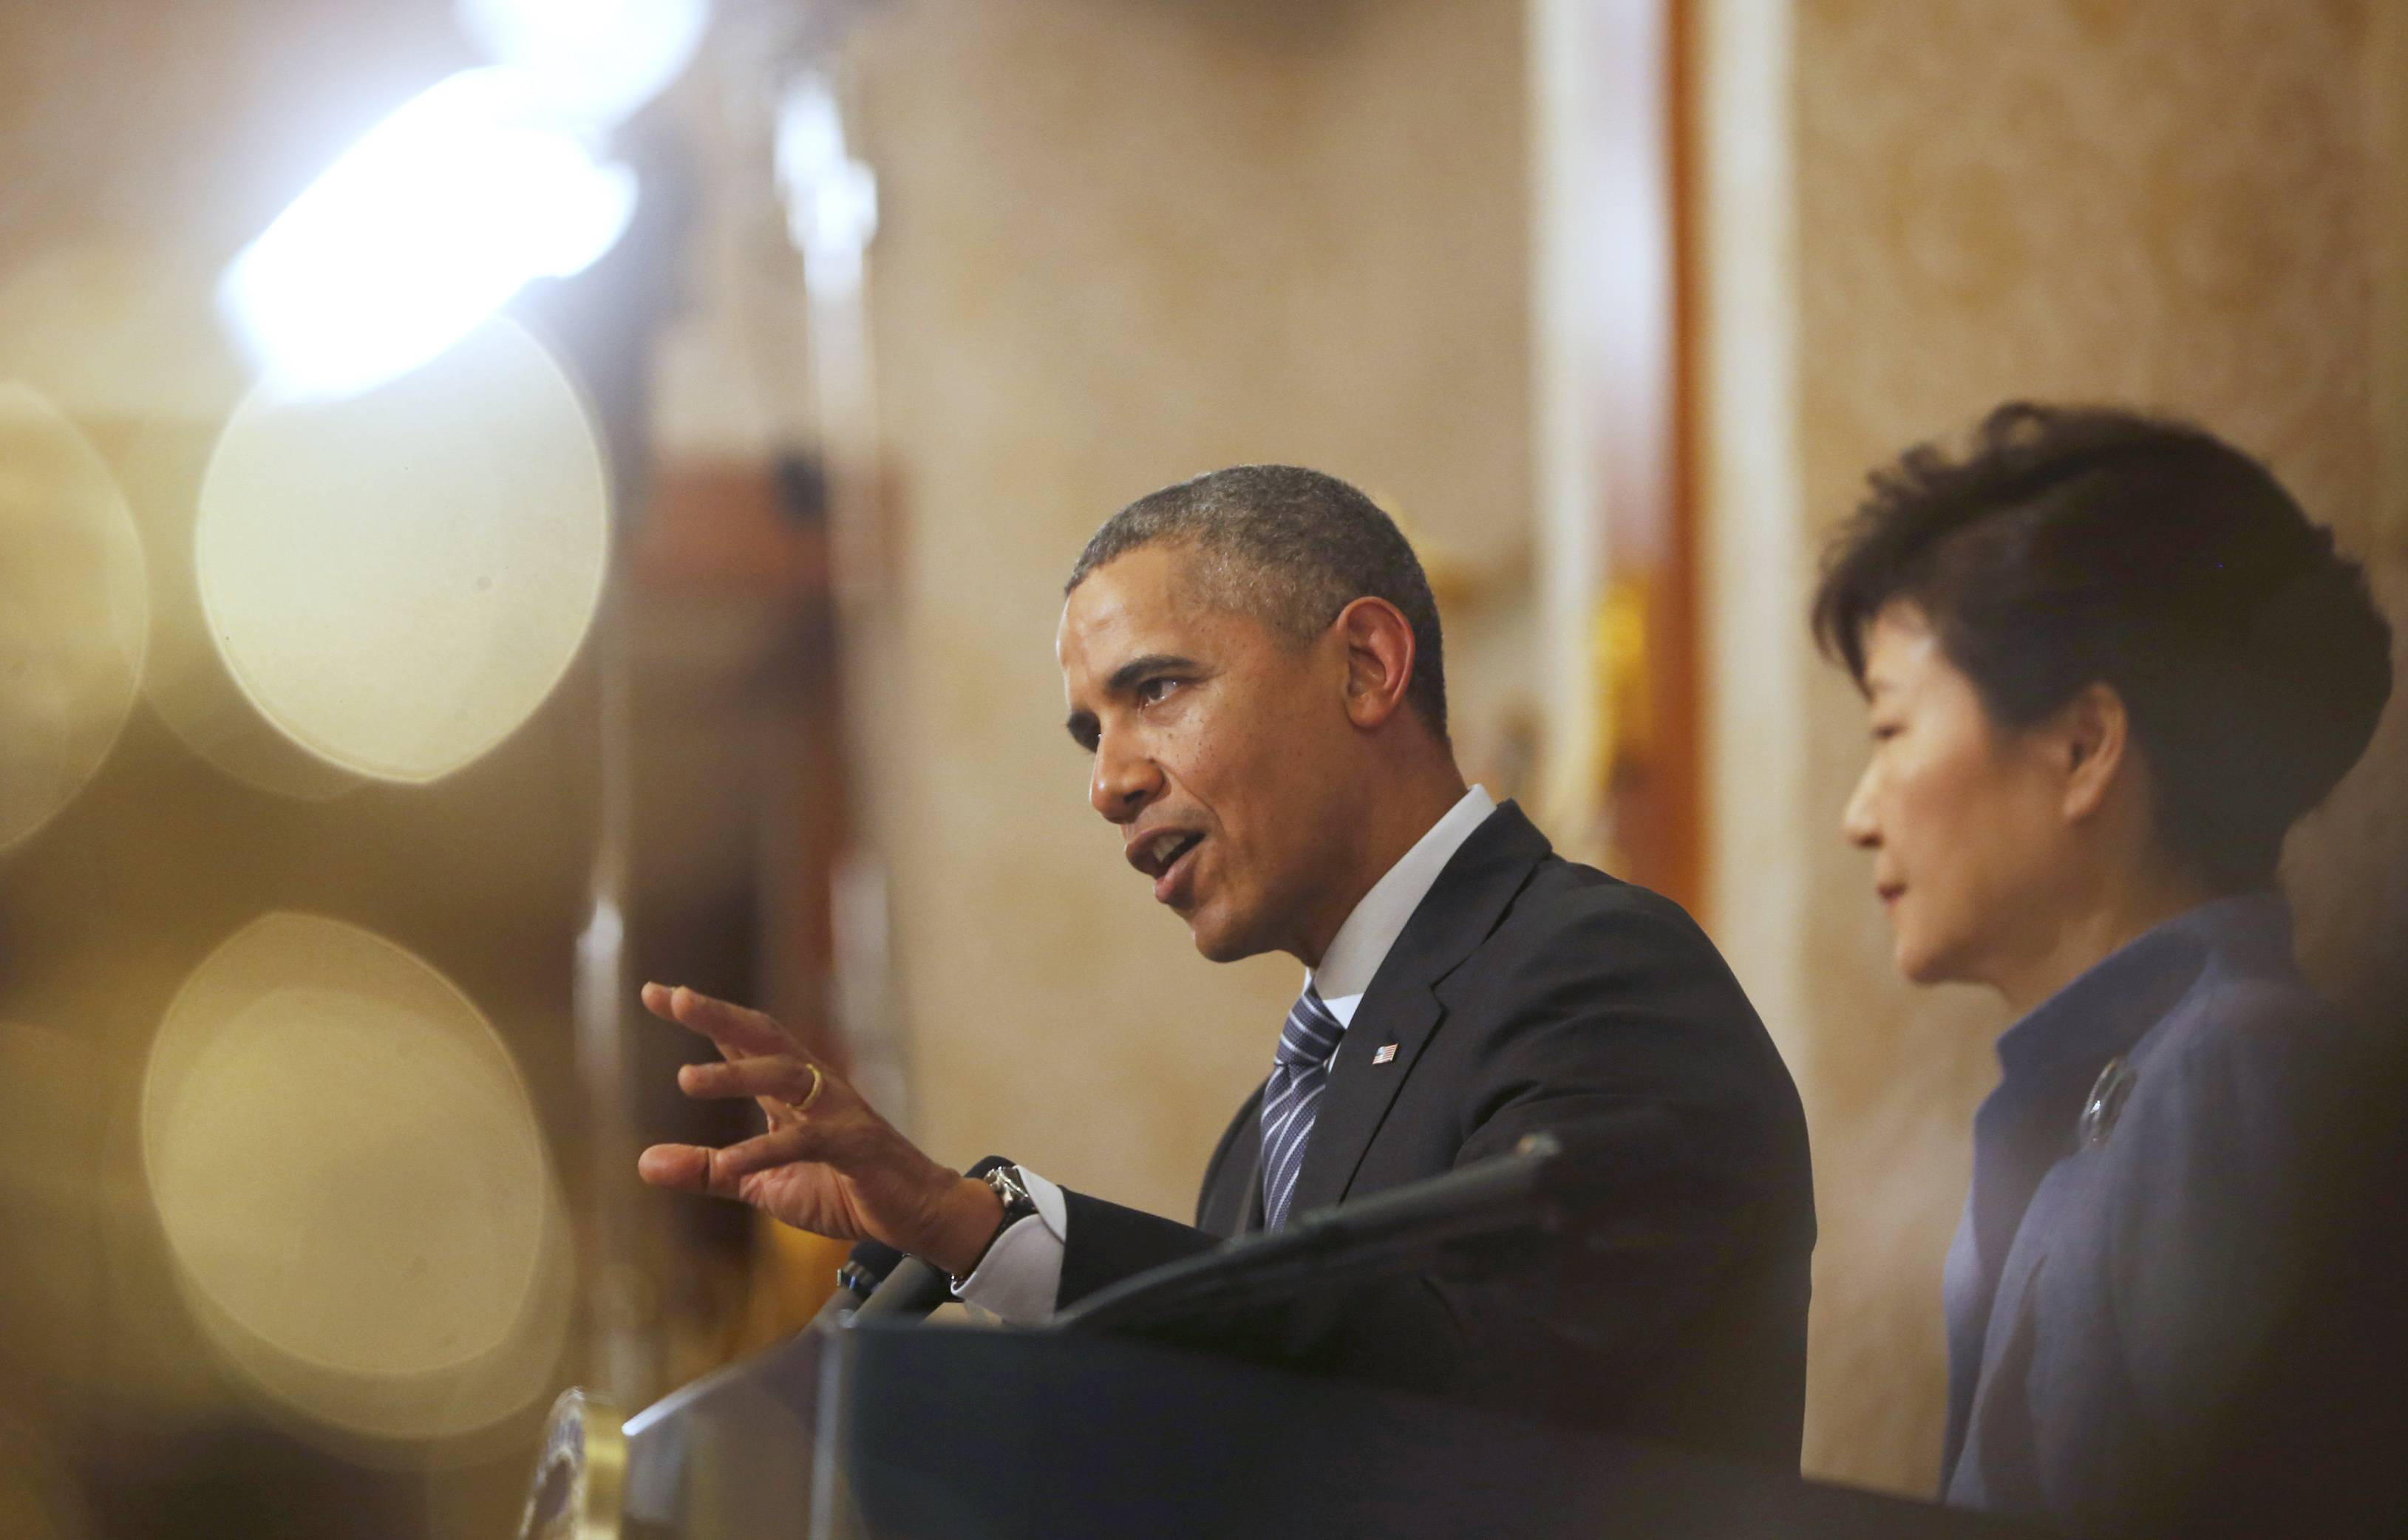 In a display of unity against North Korea's provocations, President Barack Obama and South Korean President Park Geun-hye warned Pyongyang on Friday that it could face tougher sanctions if it follows through with threats to launch a fourth nuclear test.